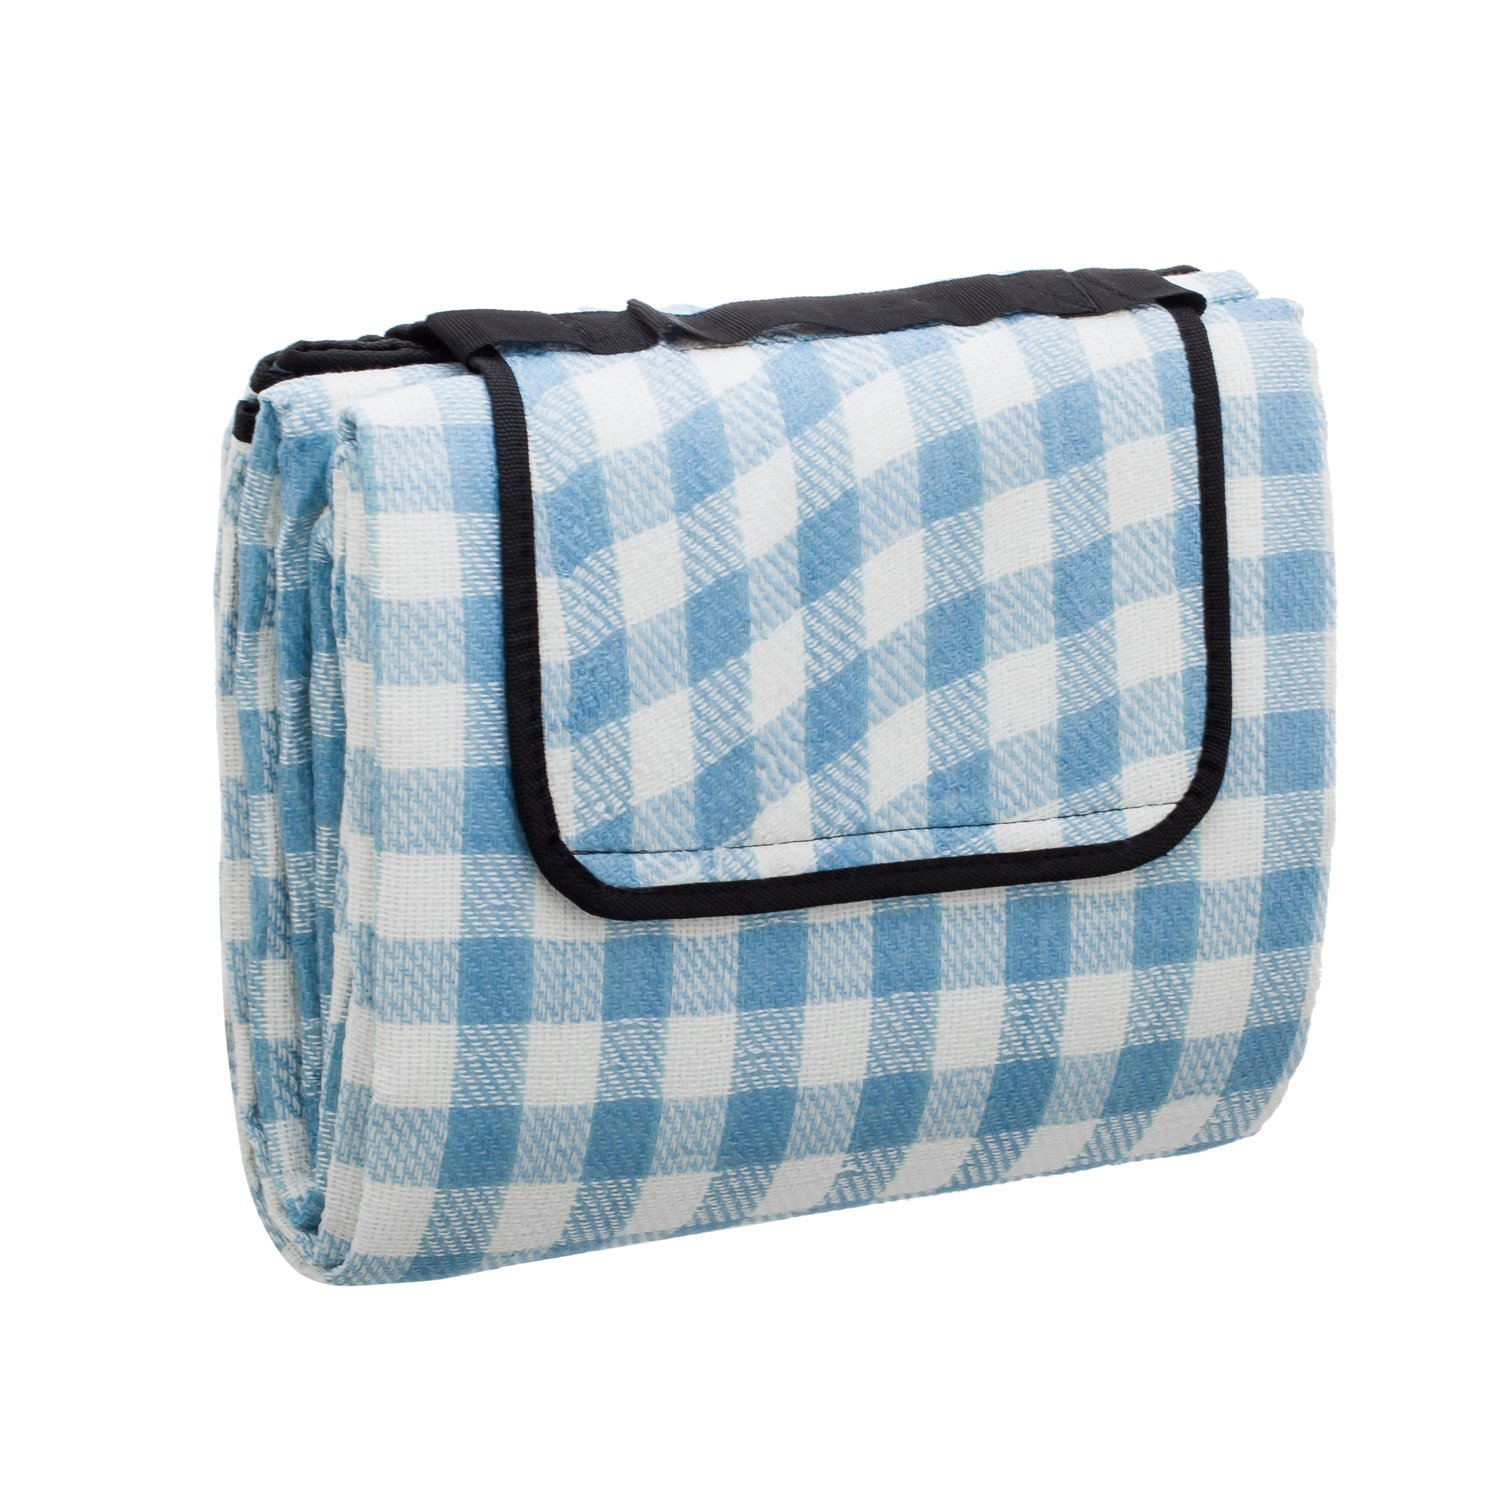 chuanyuekeji Extra Large Picnic & Outdoor Blanket with Waterproof Backing 80'' x 90'' -Blue and white